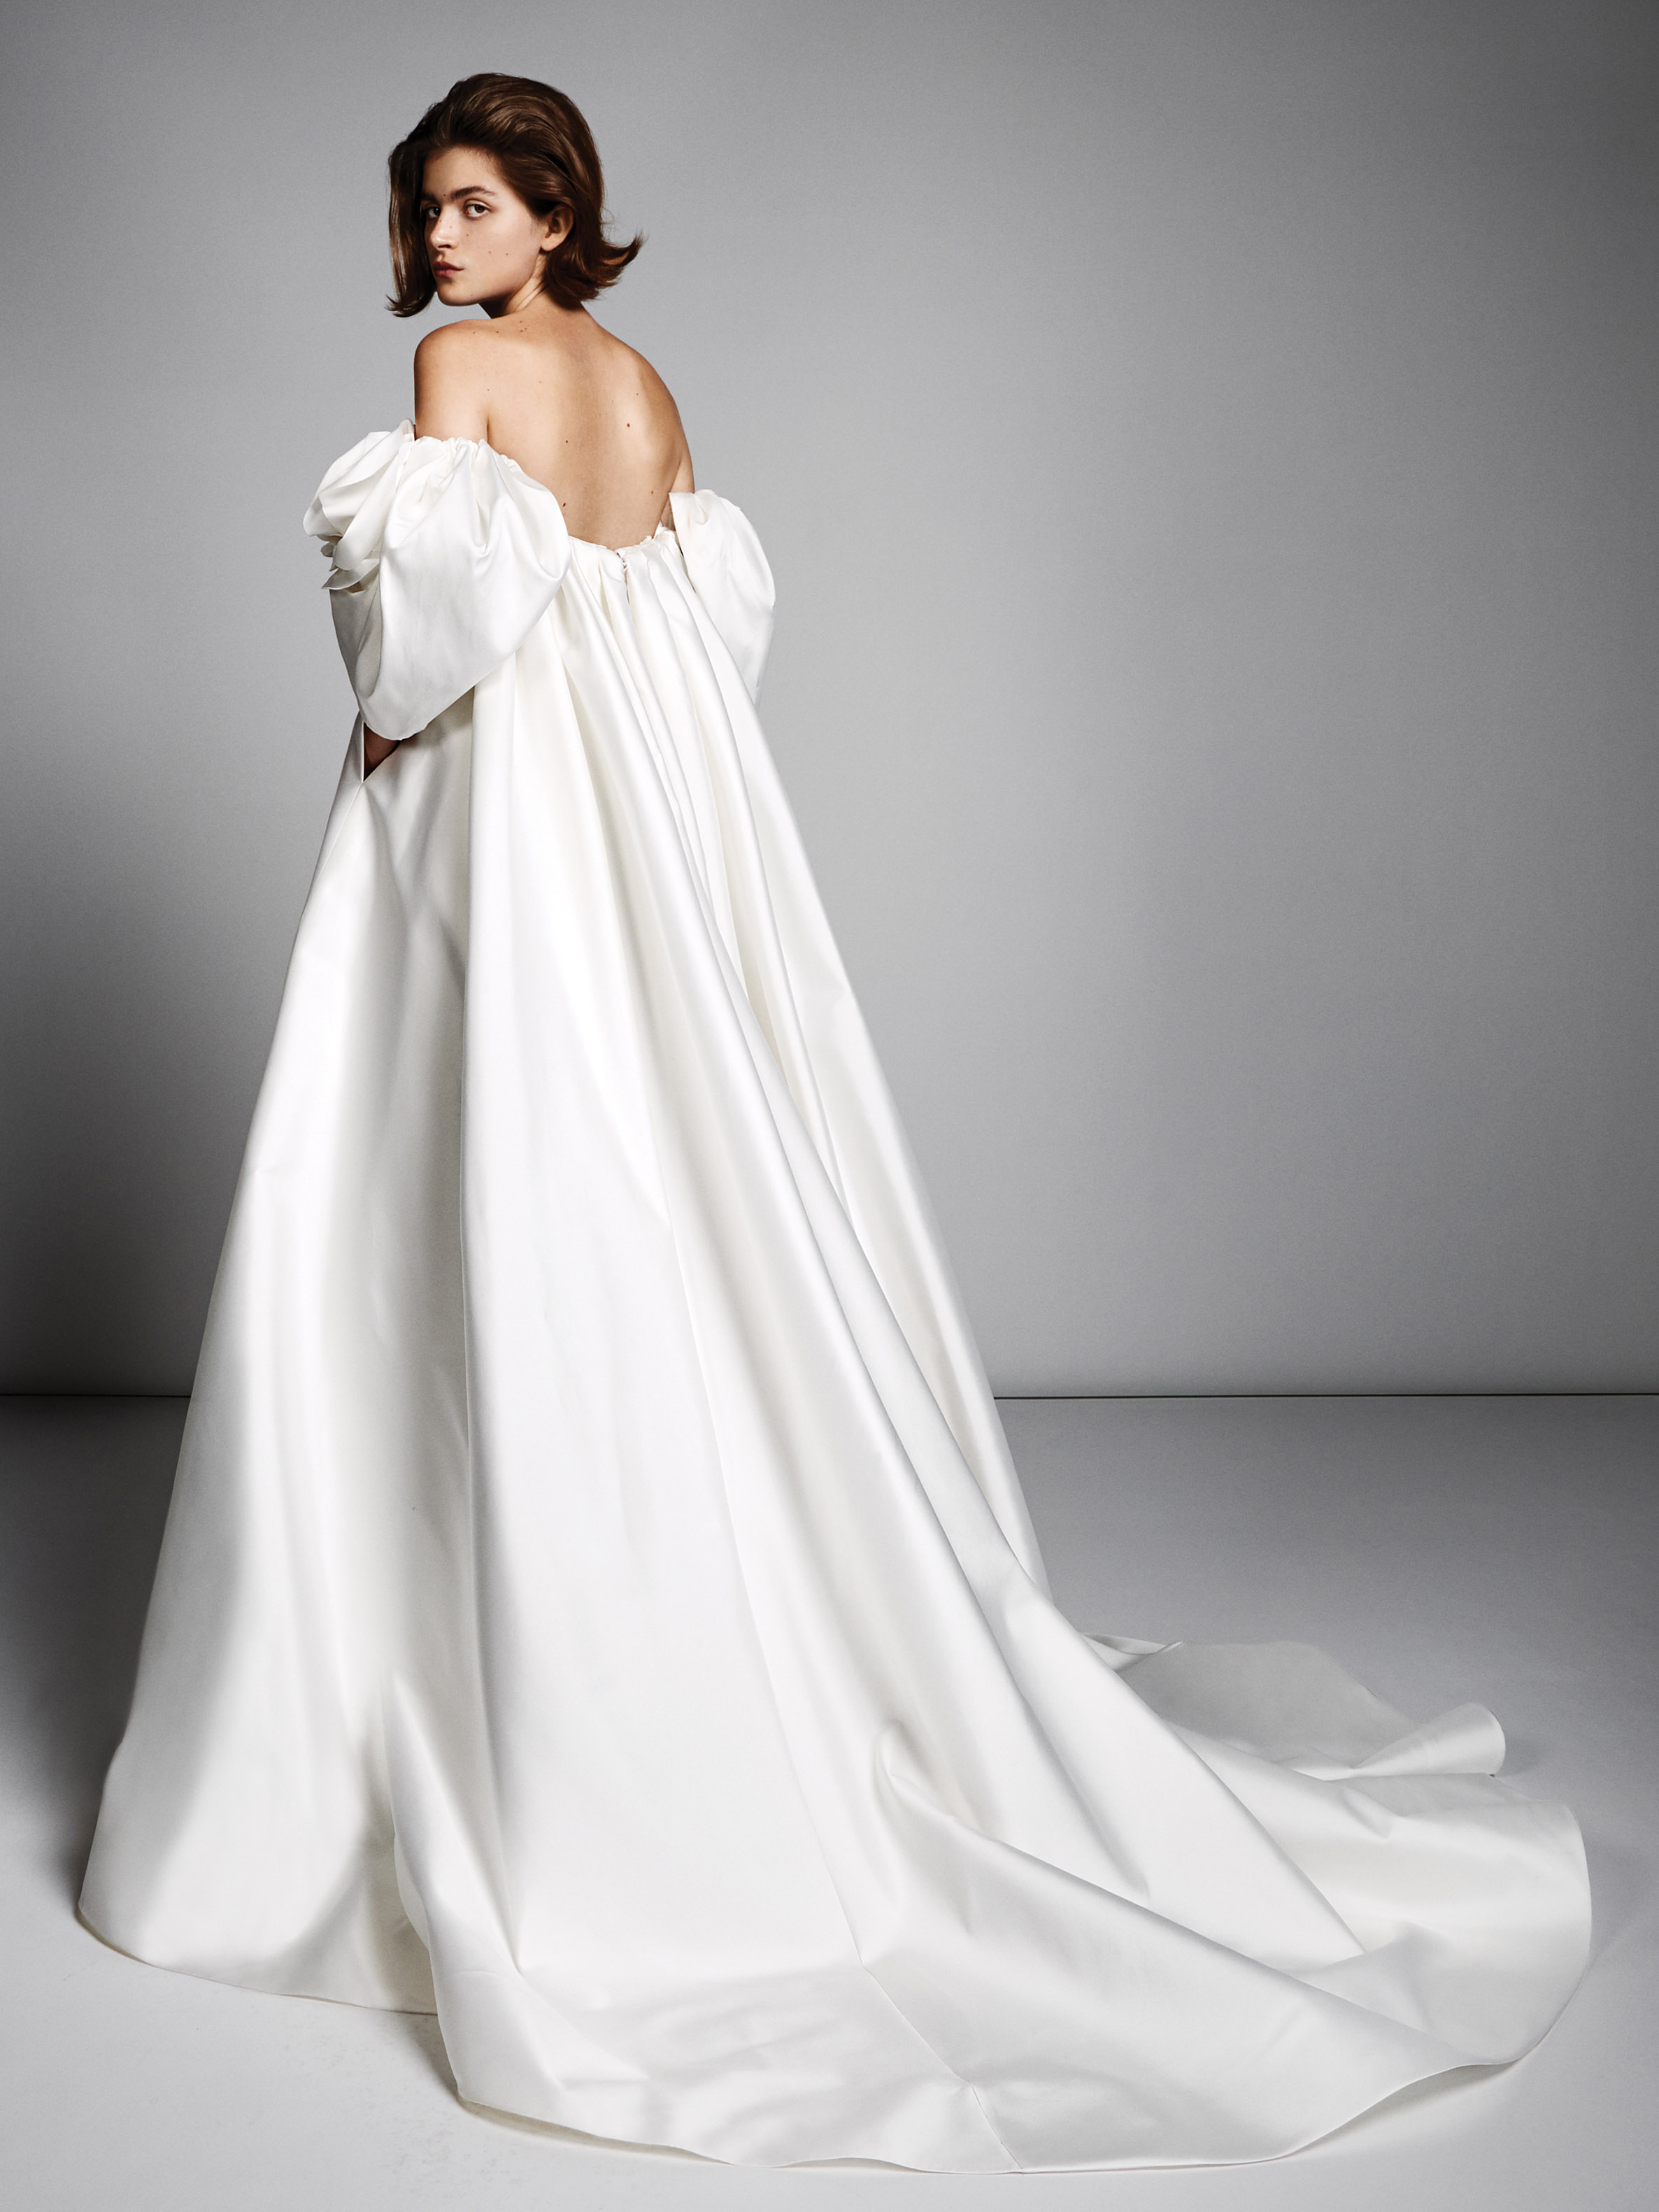 viktor rolf marriage fall 2019 off the shoulder three-quarter sleeves ball gown with long train